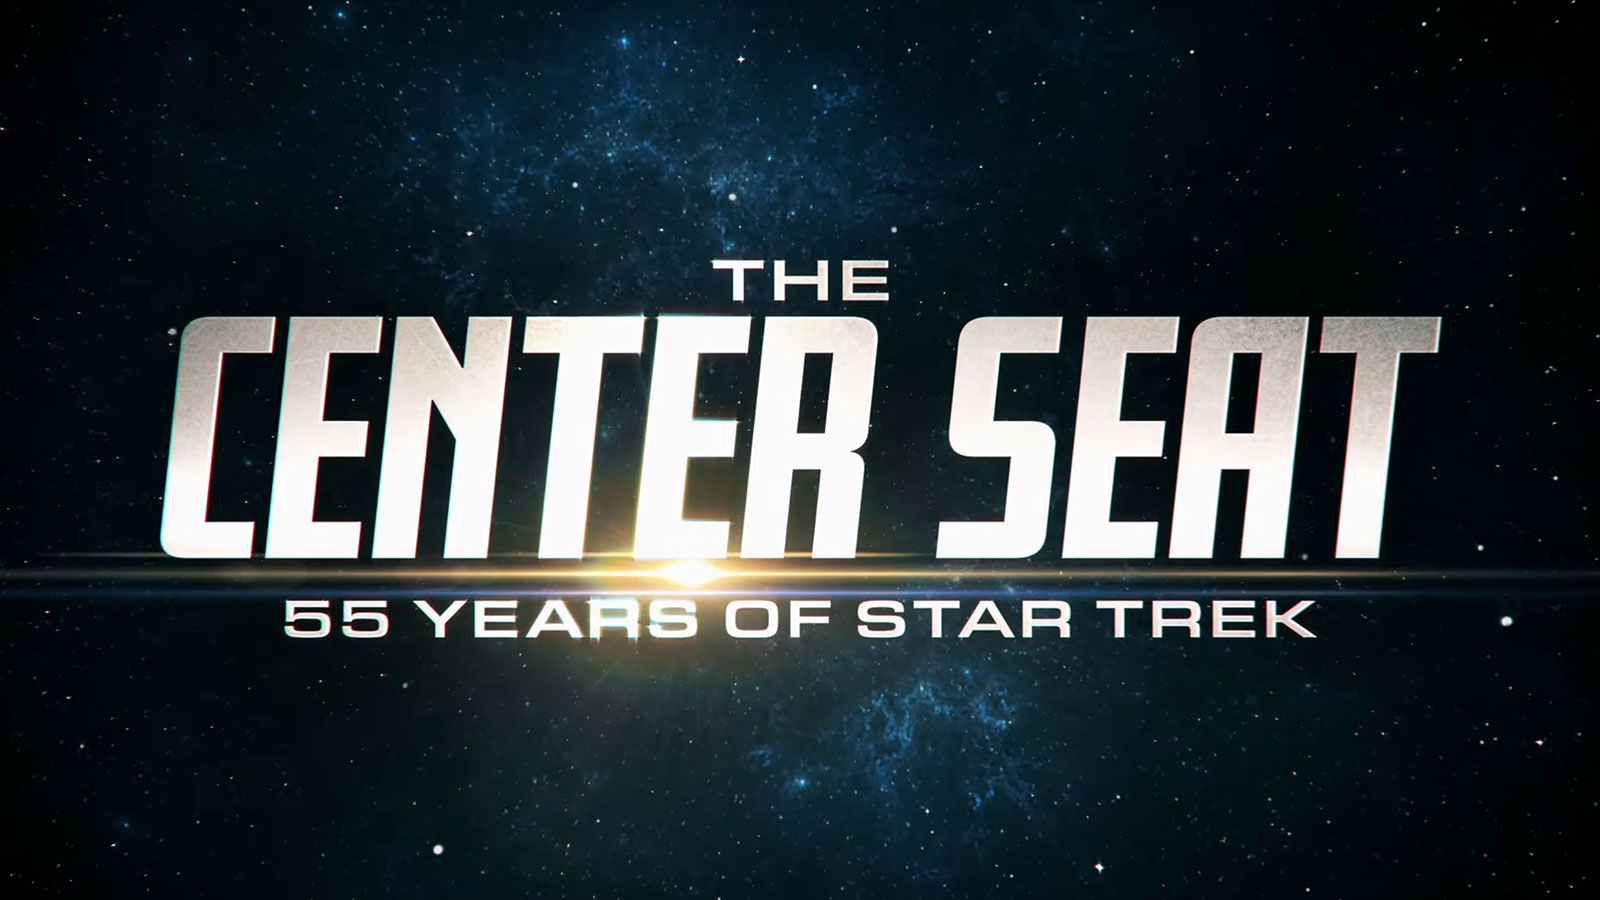 New Star Trek Docuseries 'The Center Seat' Announced, Coming This Fall